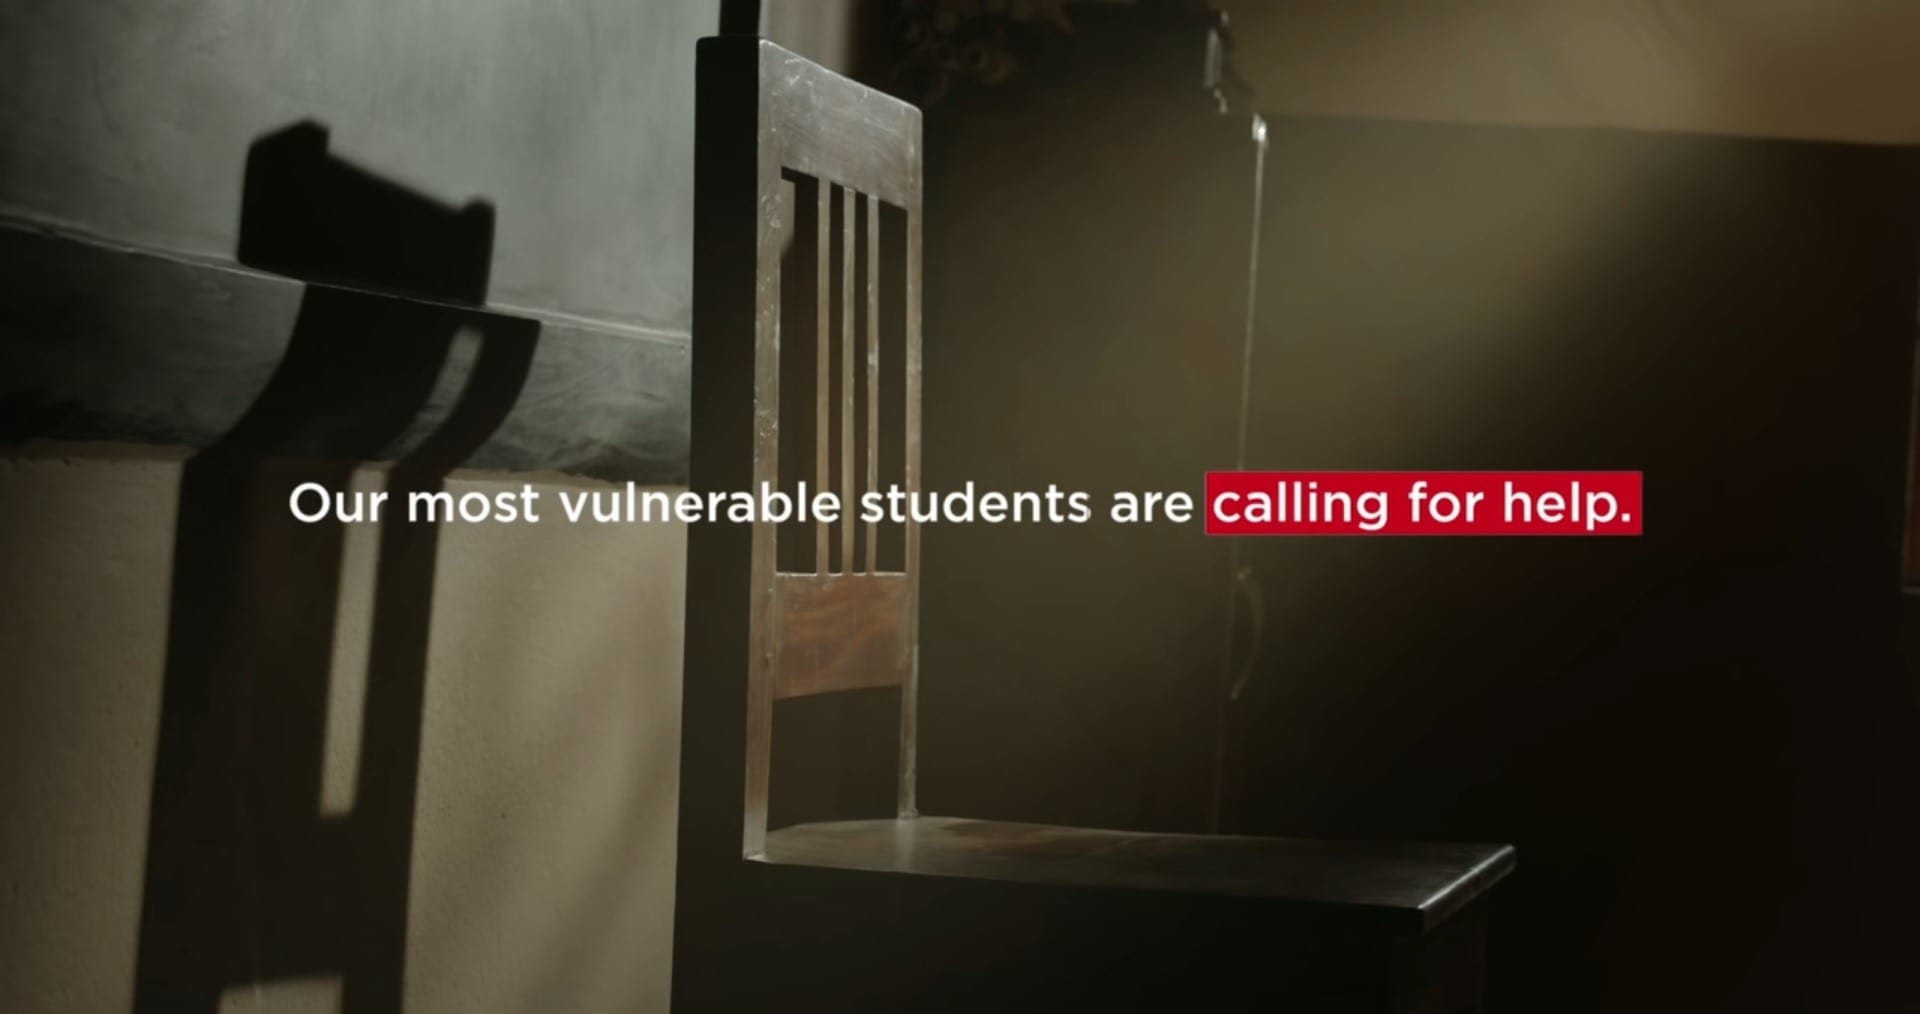 Text in image over empty chair: our most vulnerable students are calling for help